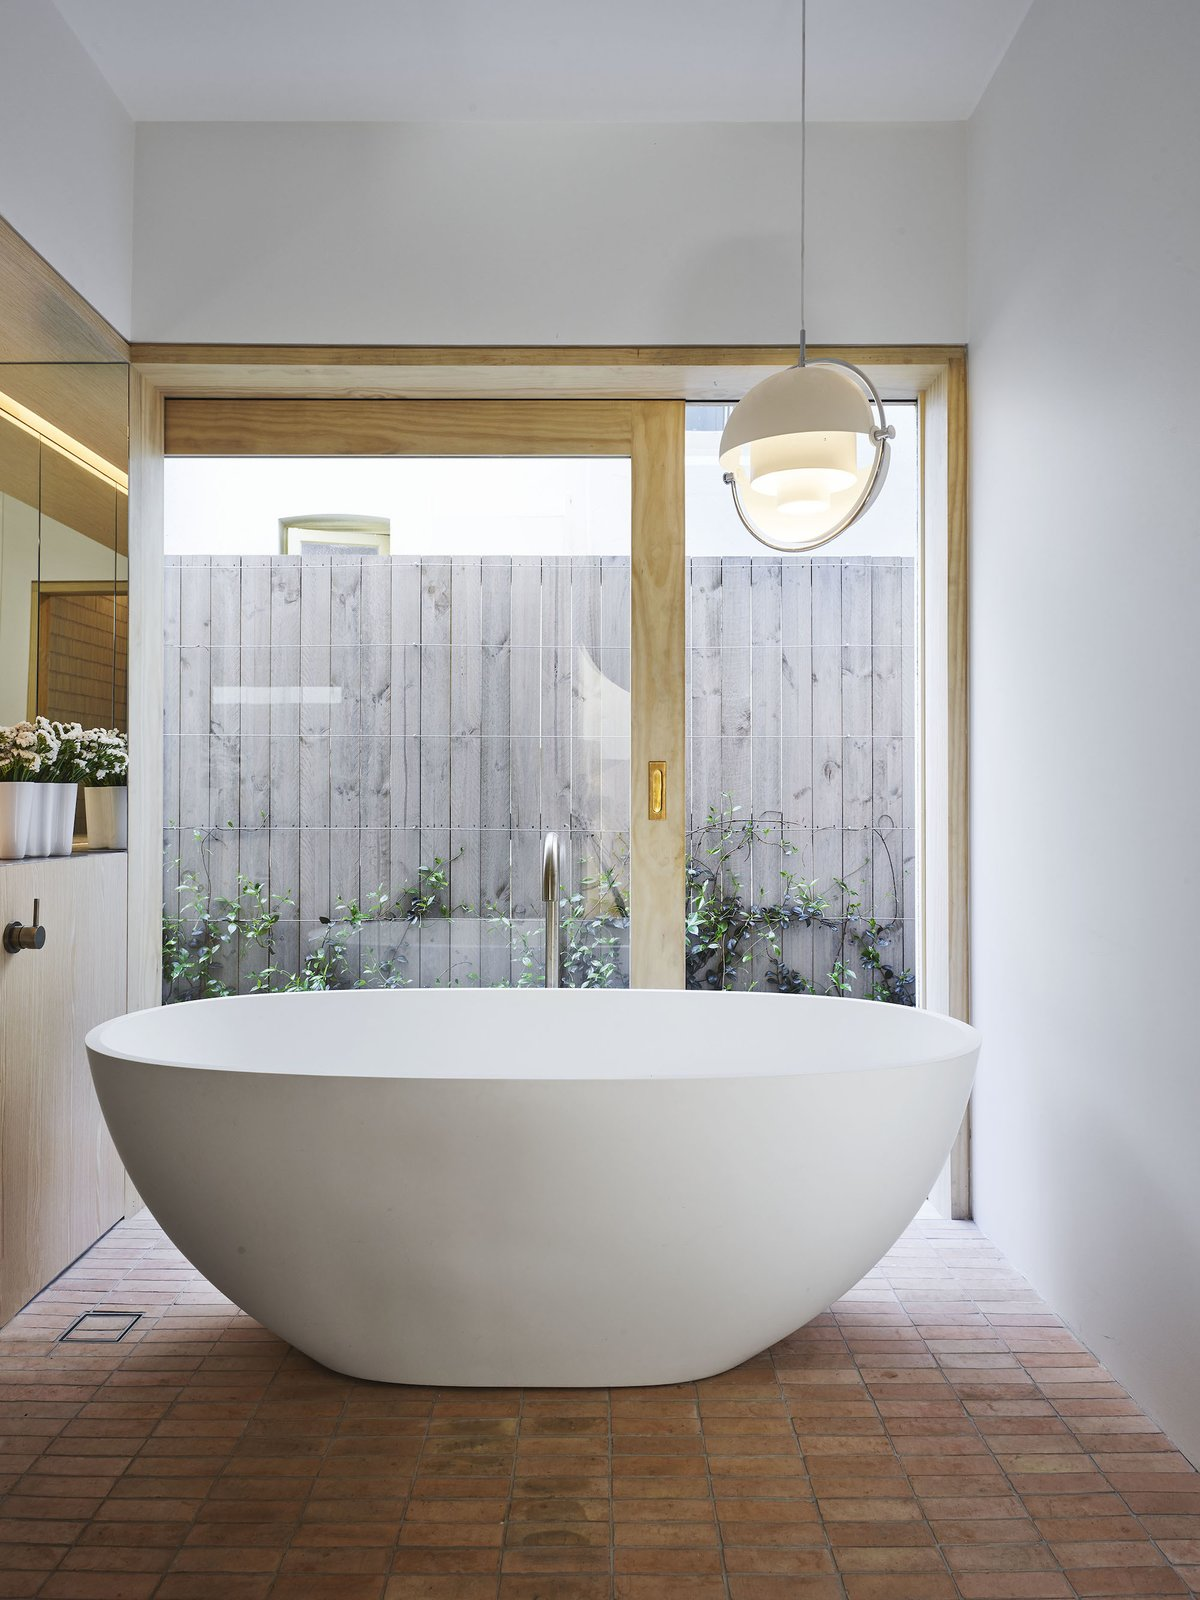 Bathroom in Tree House by Madeleine Blanchfield Architects